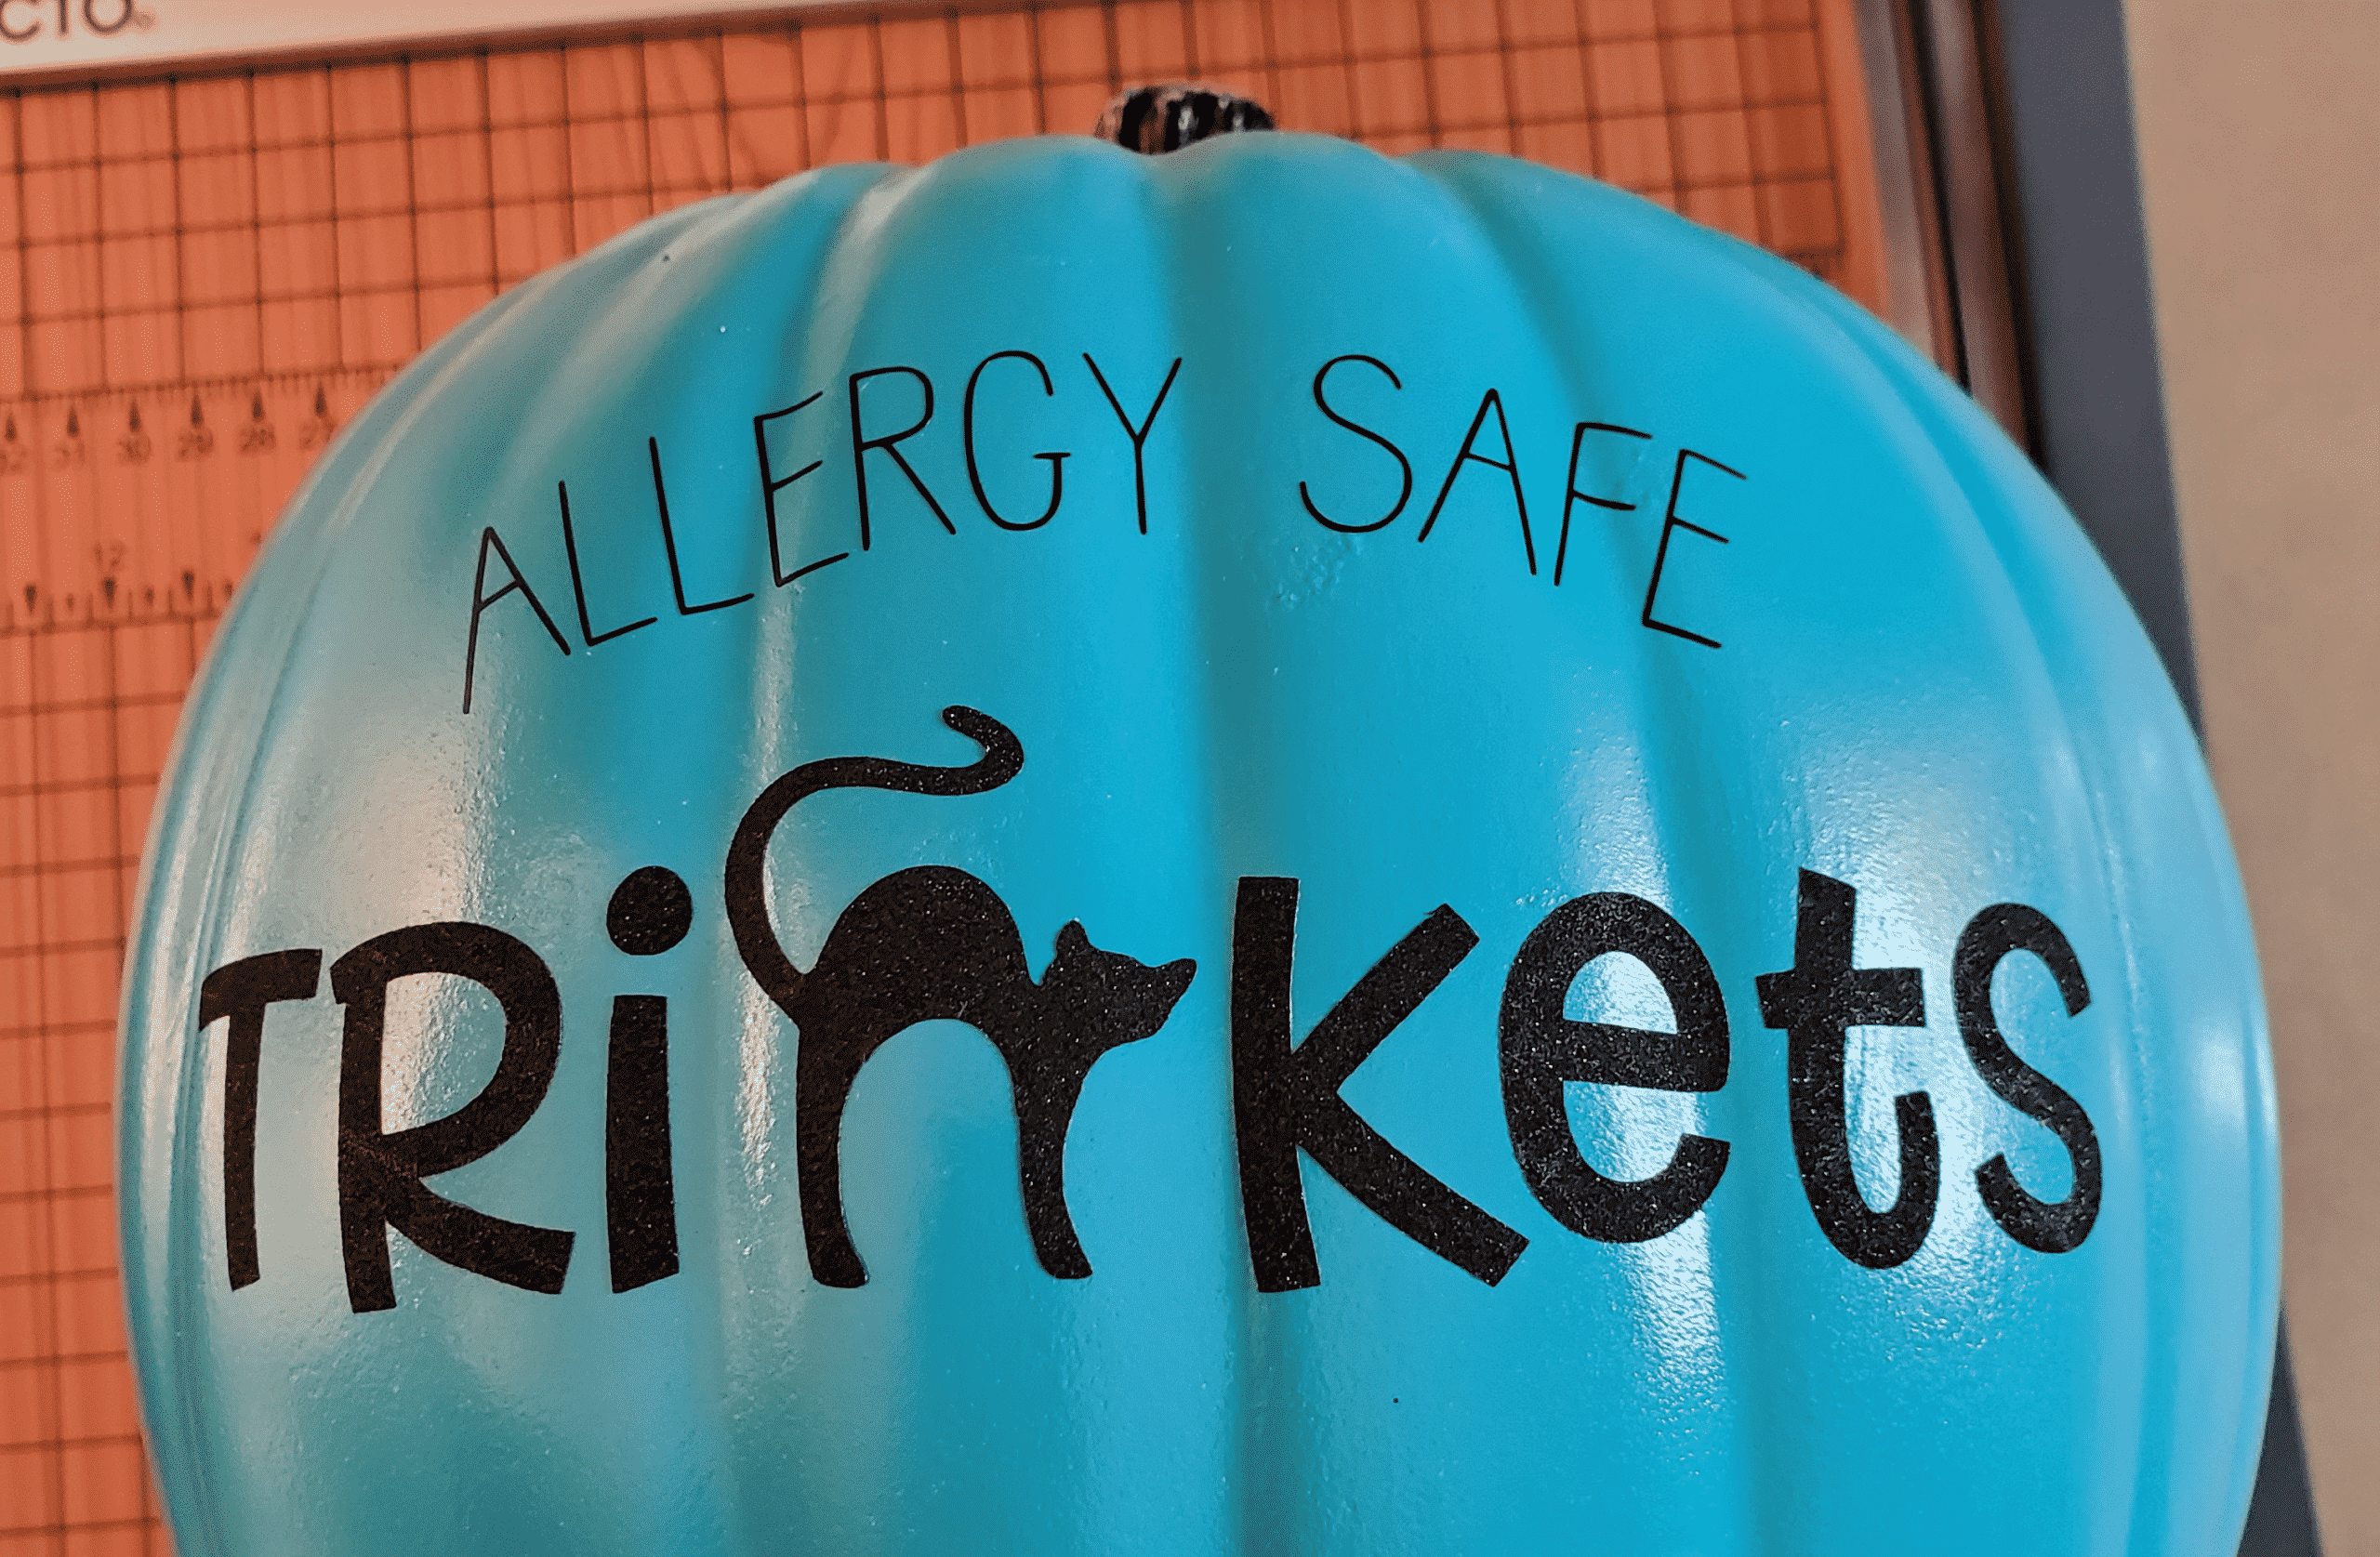 Allergy Safe and Trinkets on pumpkin